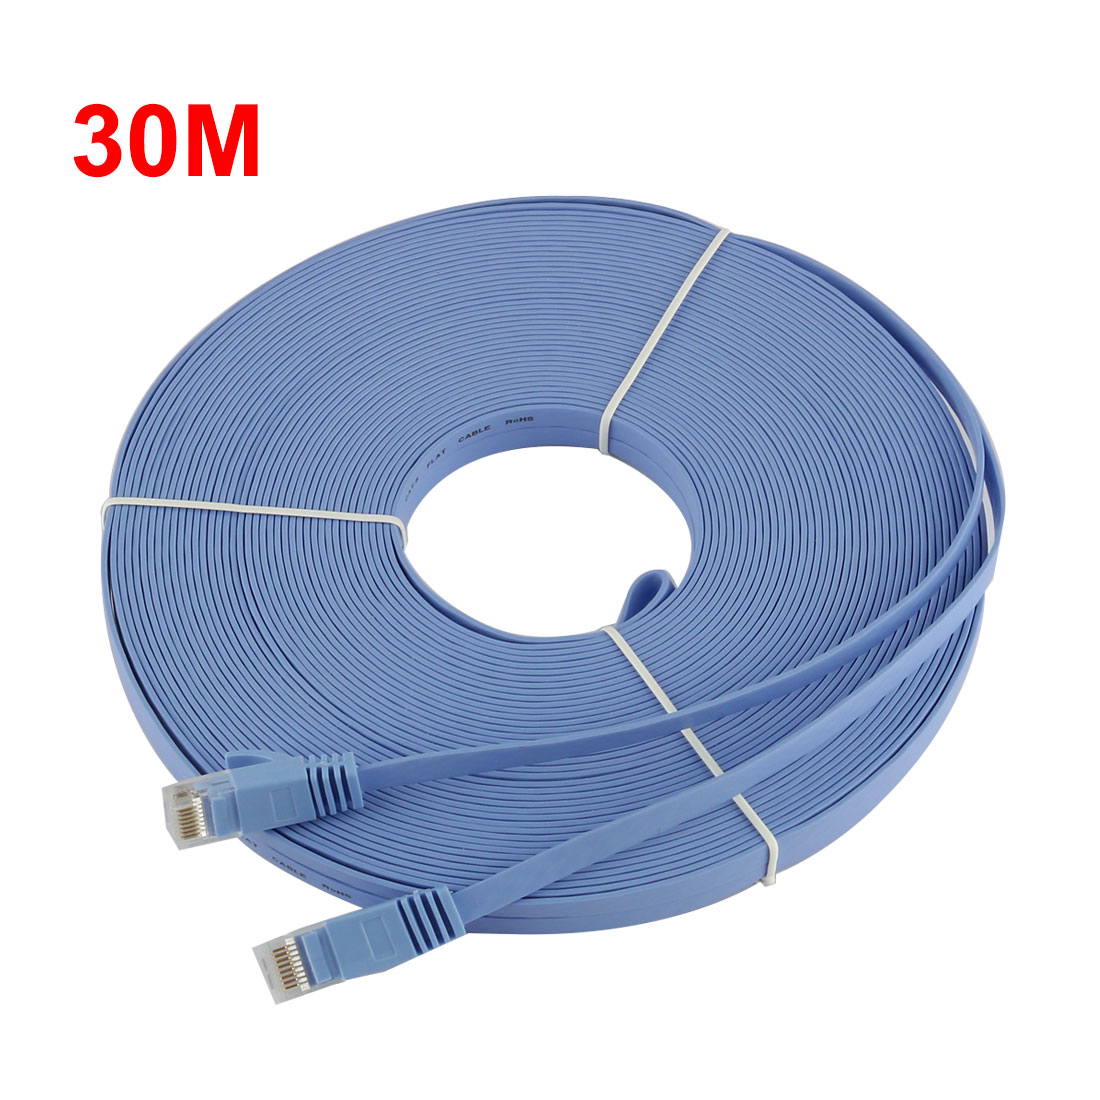 98FT-30M-CAT6-CAT-6-Flat-UTP-Ethernet-Reseau-Cable-RJ45-Patch-LAN-Cord-Bleu miniature 2